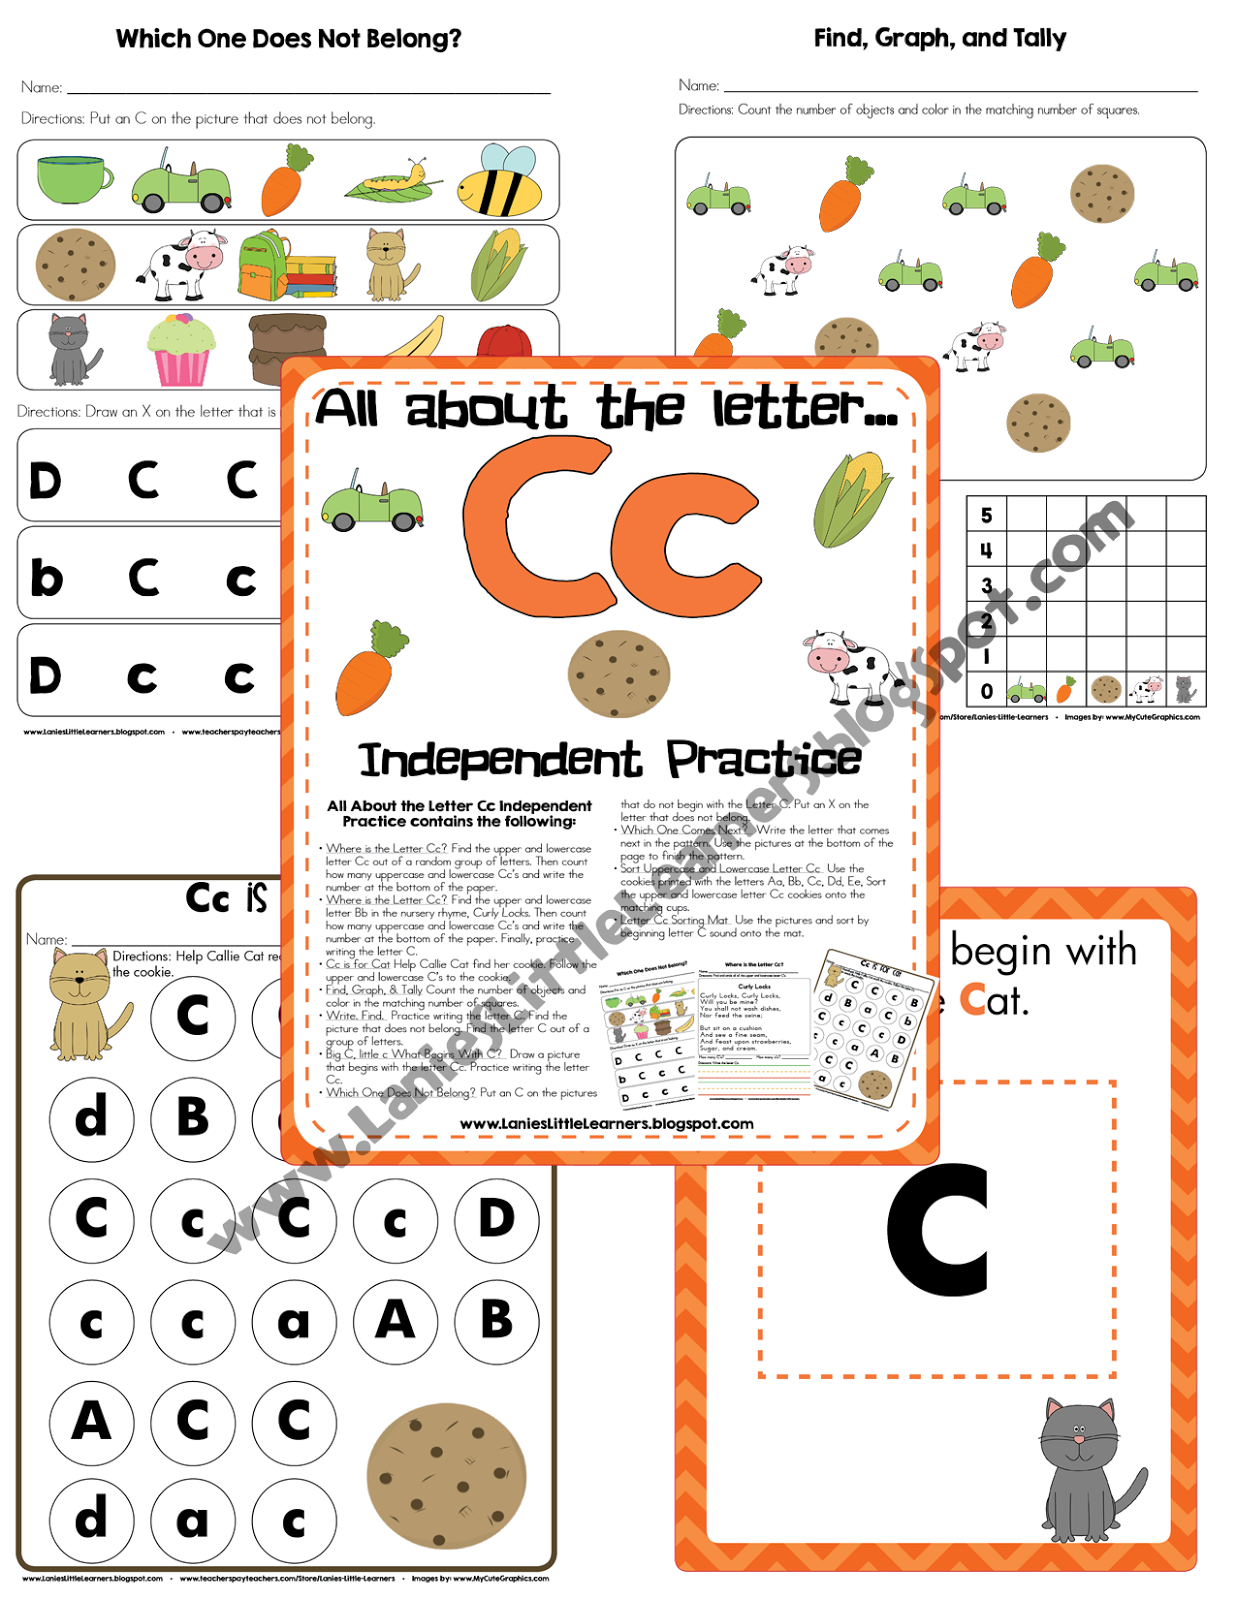 All About the Letter Cc Independent Practice